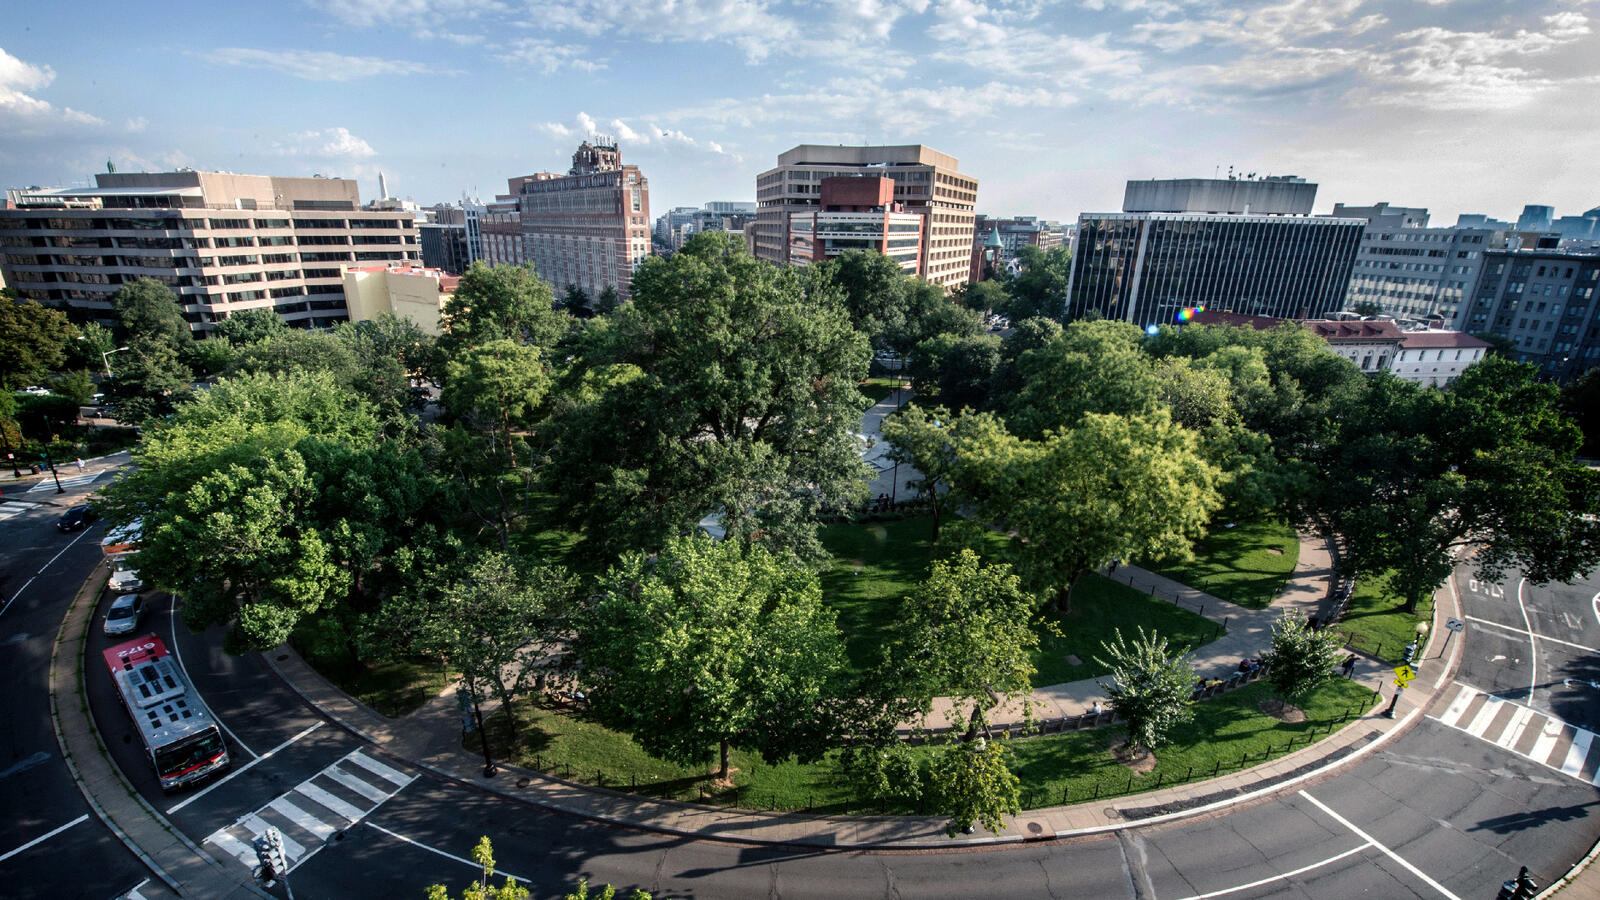 Image - The Dupont Circle